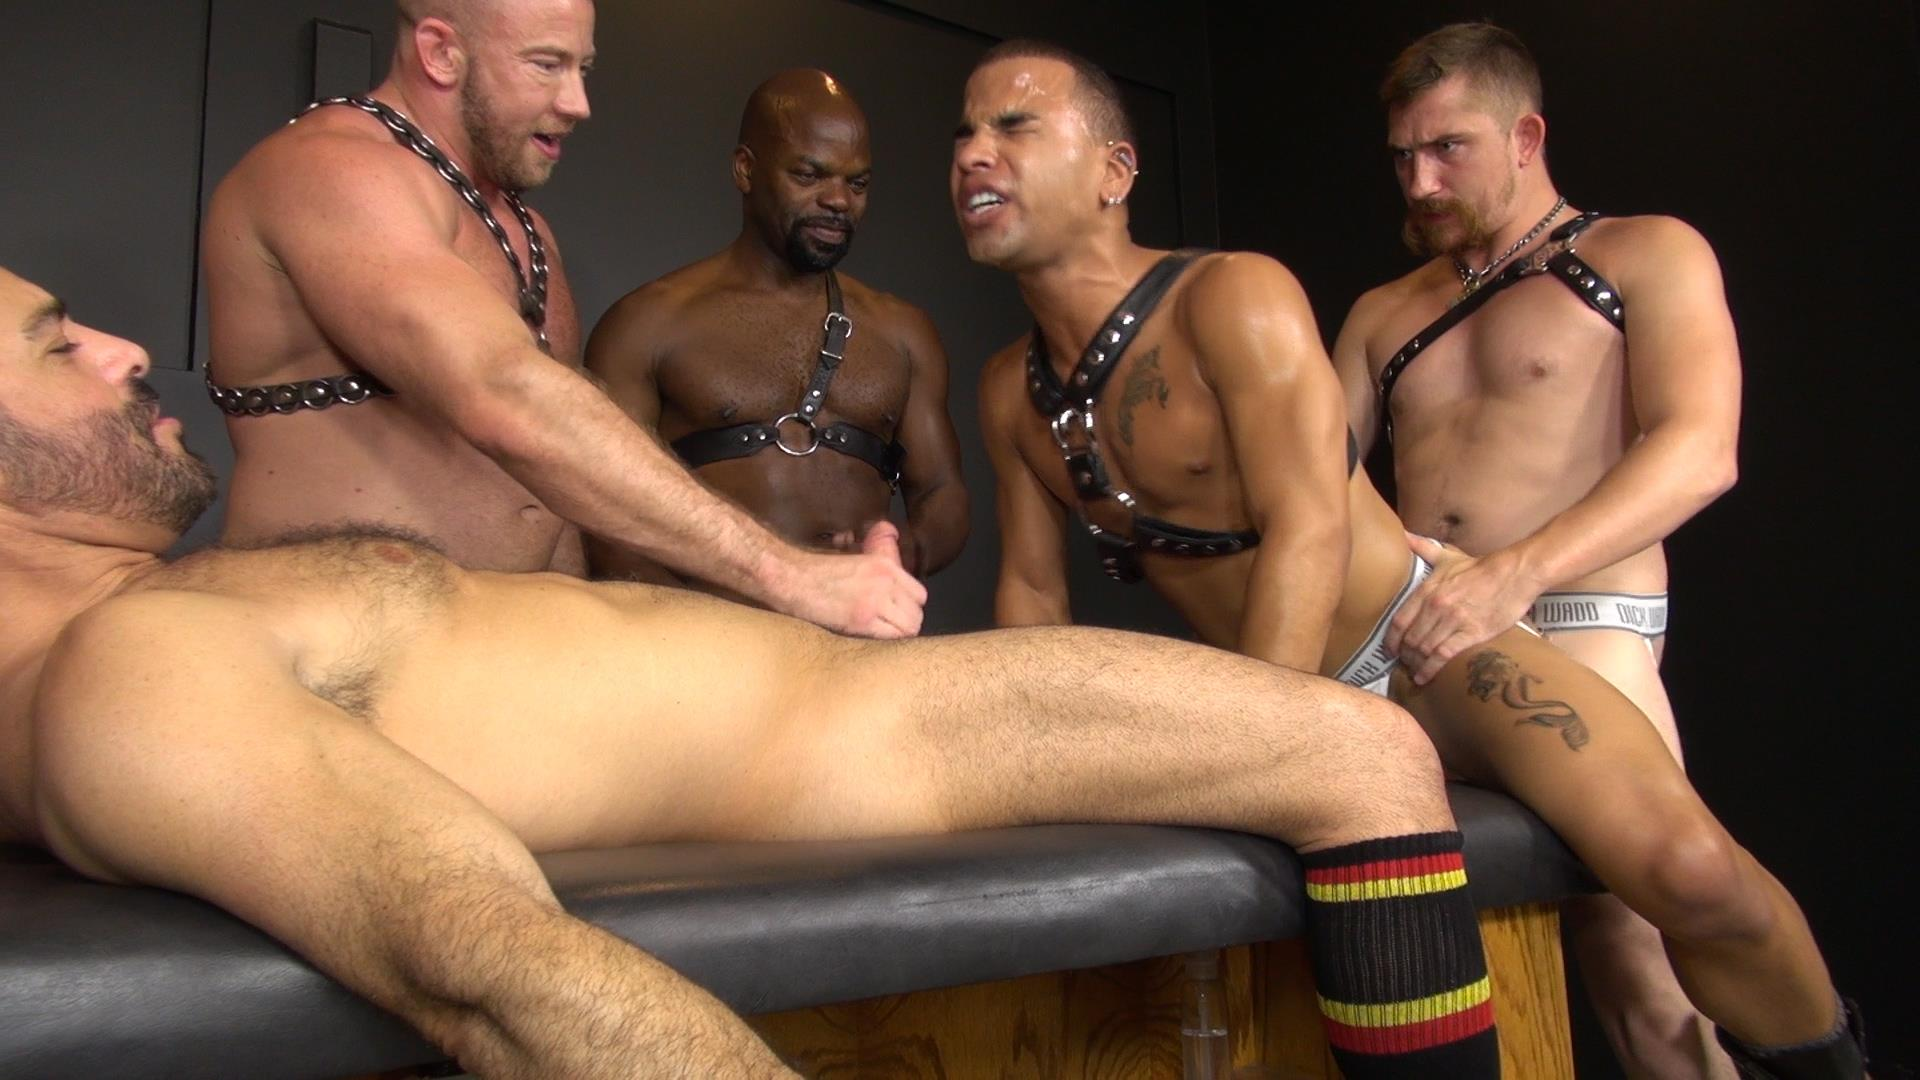 Raw-and-Rough-Ken-Byker-Dayton-OConnor-Trelino-Shay-Michaels-Adam-Russo-Cutler-X-Interracial-Bareback-Orgy-Amateur-Gay-Porn-08 Interracial Bareback Orgy With Adam Russo & Cutler X